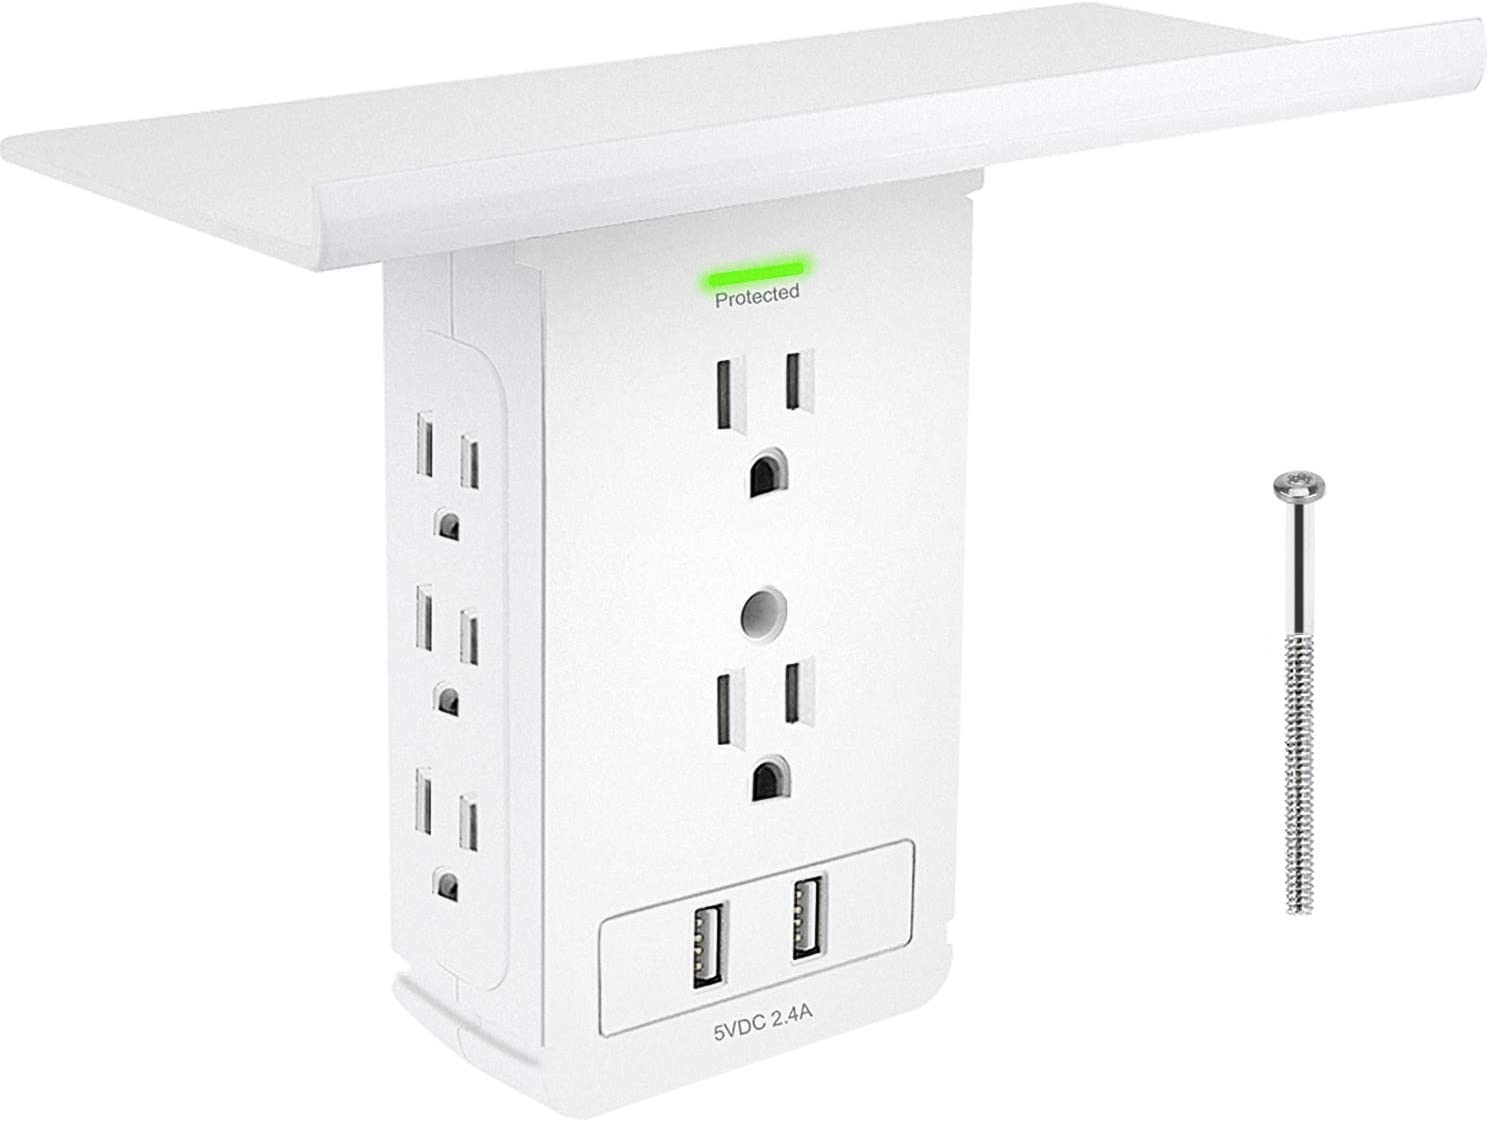 Surge Protector with Shelf,Wall Outlet Shelf with 8 Electrical Outlet Extenders,2 USB Charging Ports,Extra-Large Removable Built-in Shelf